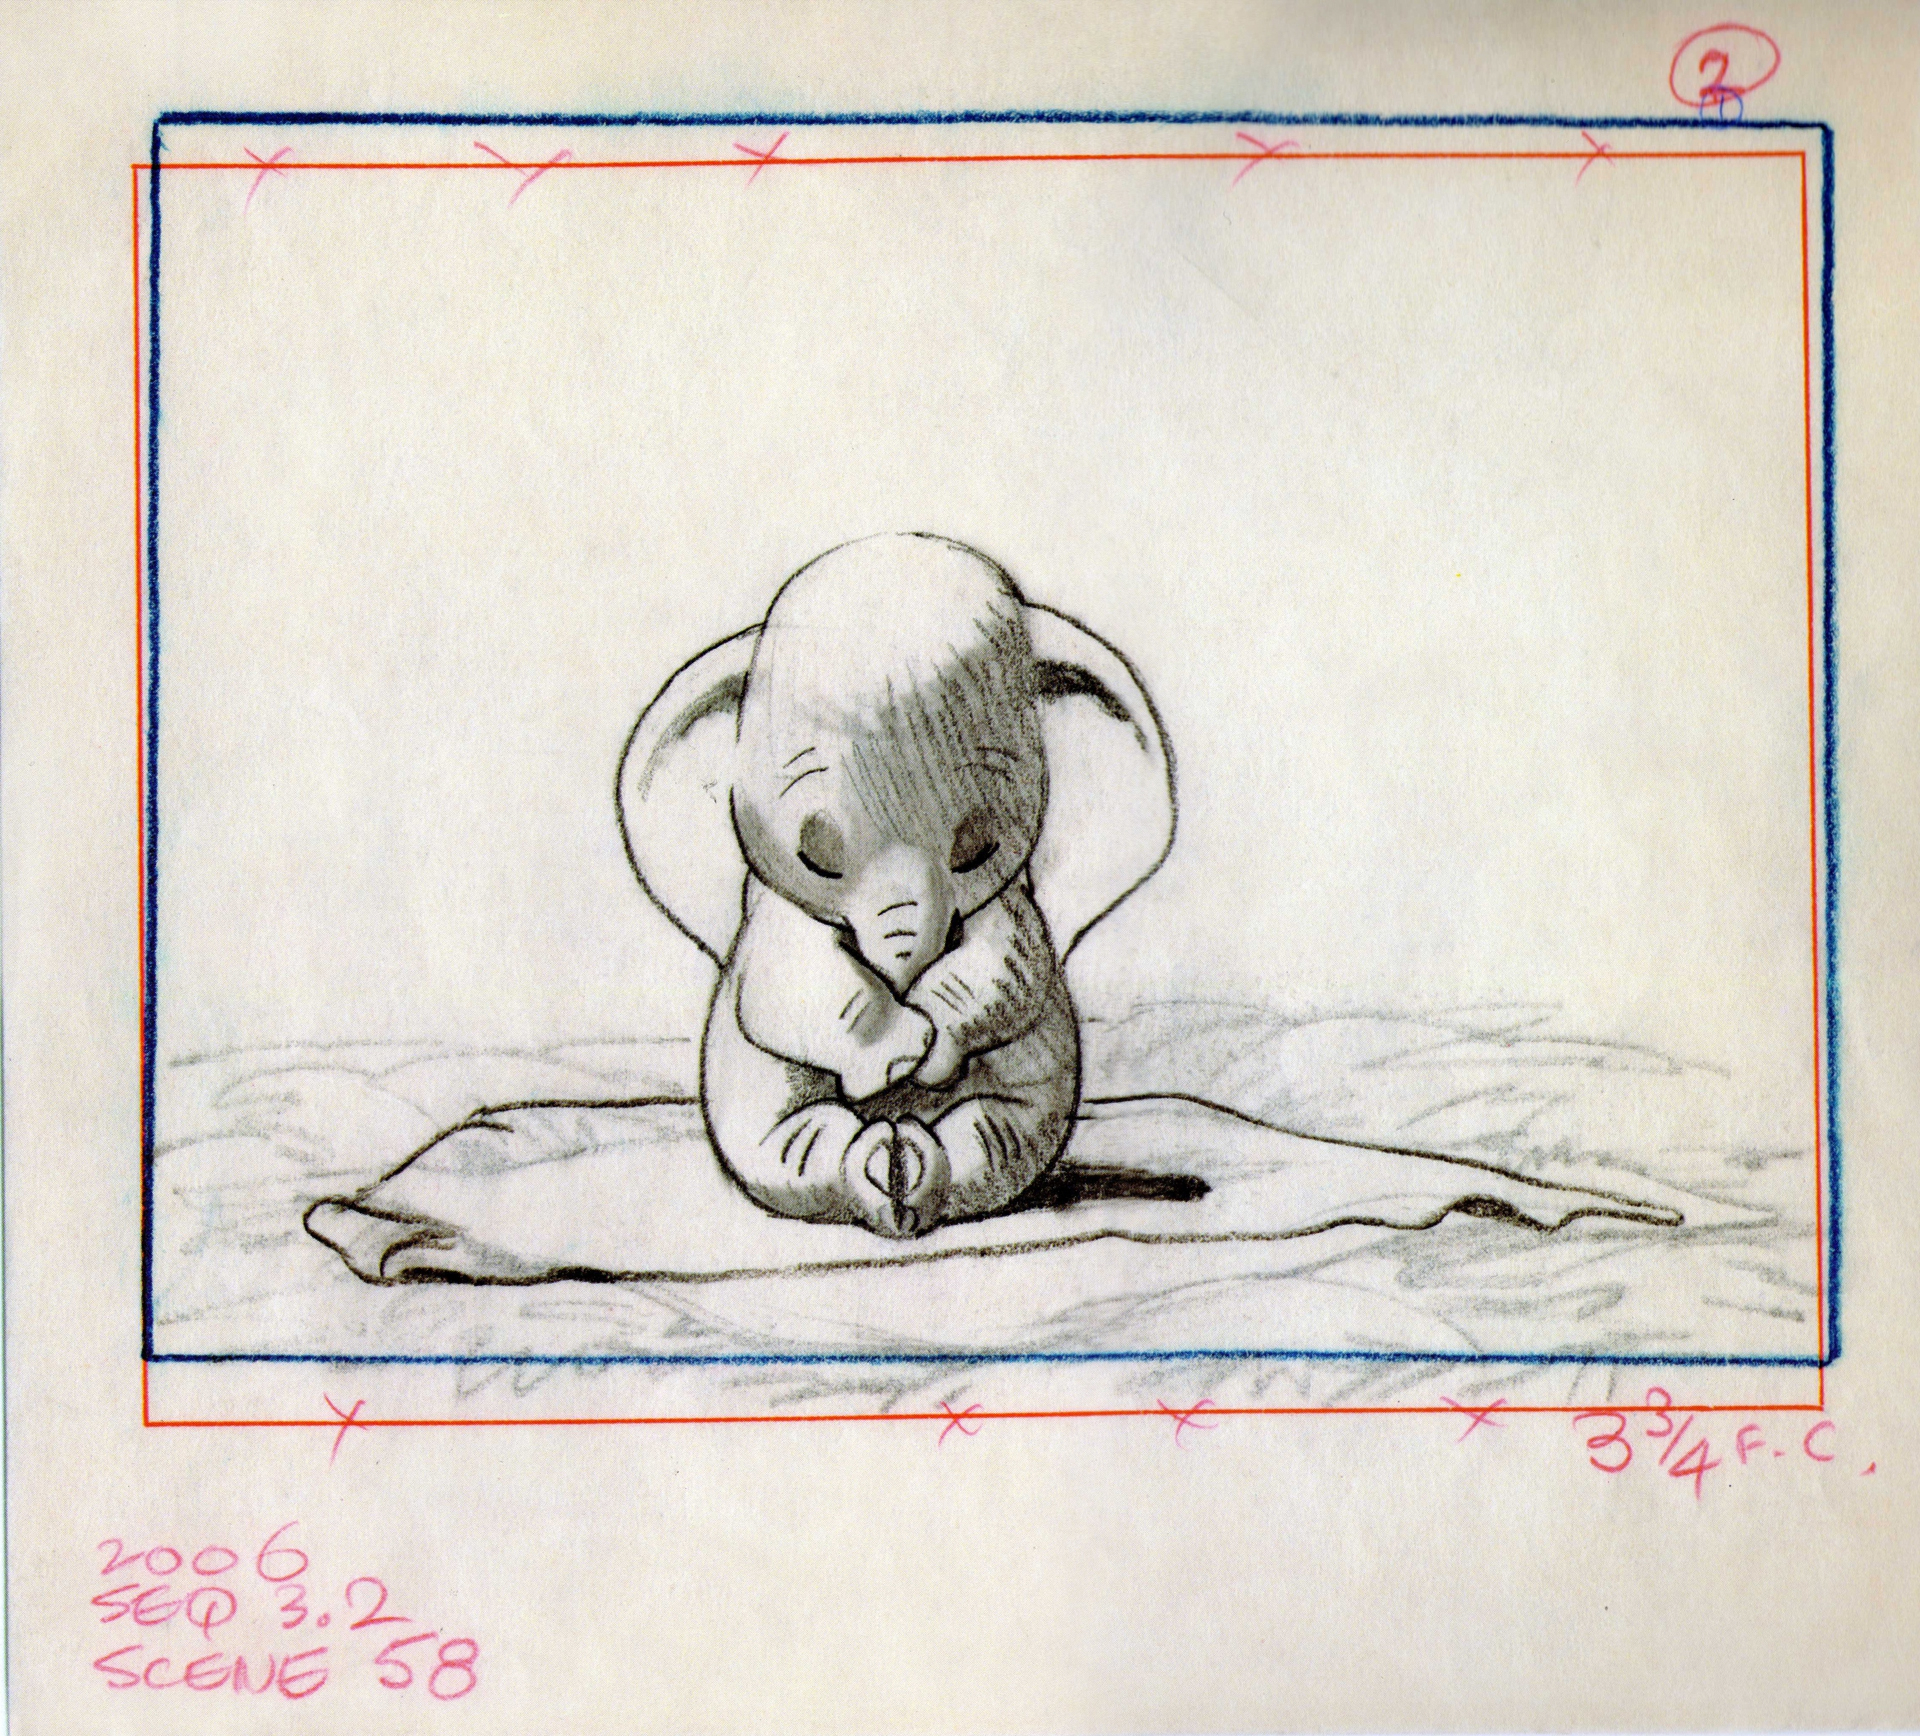 Dumbo - The Art Of Disney concernant Dessin Dumbo